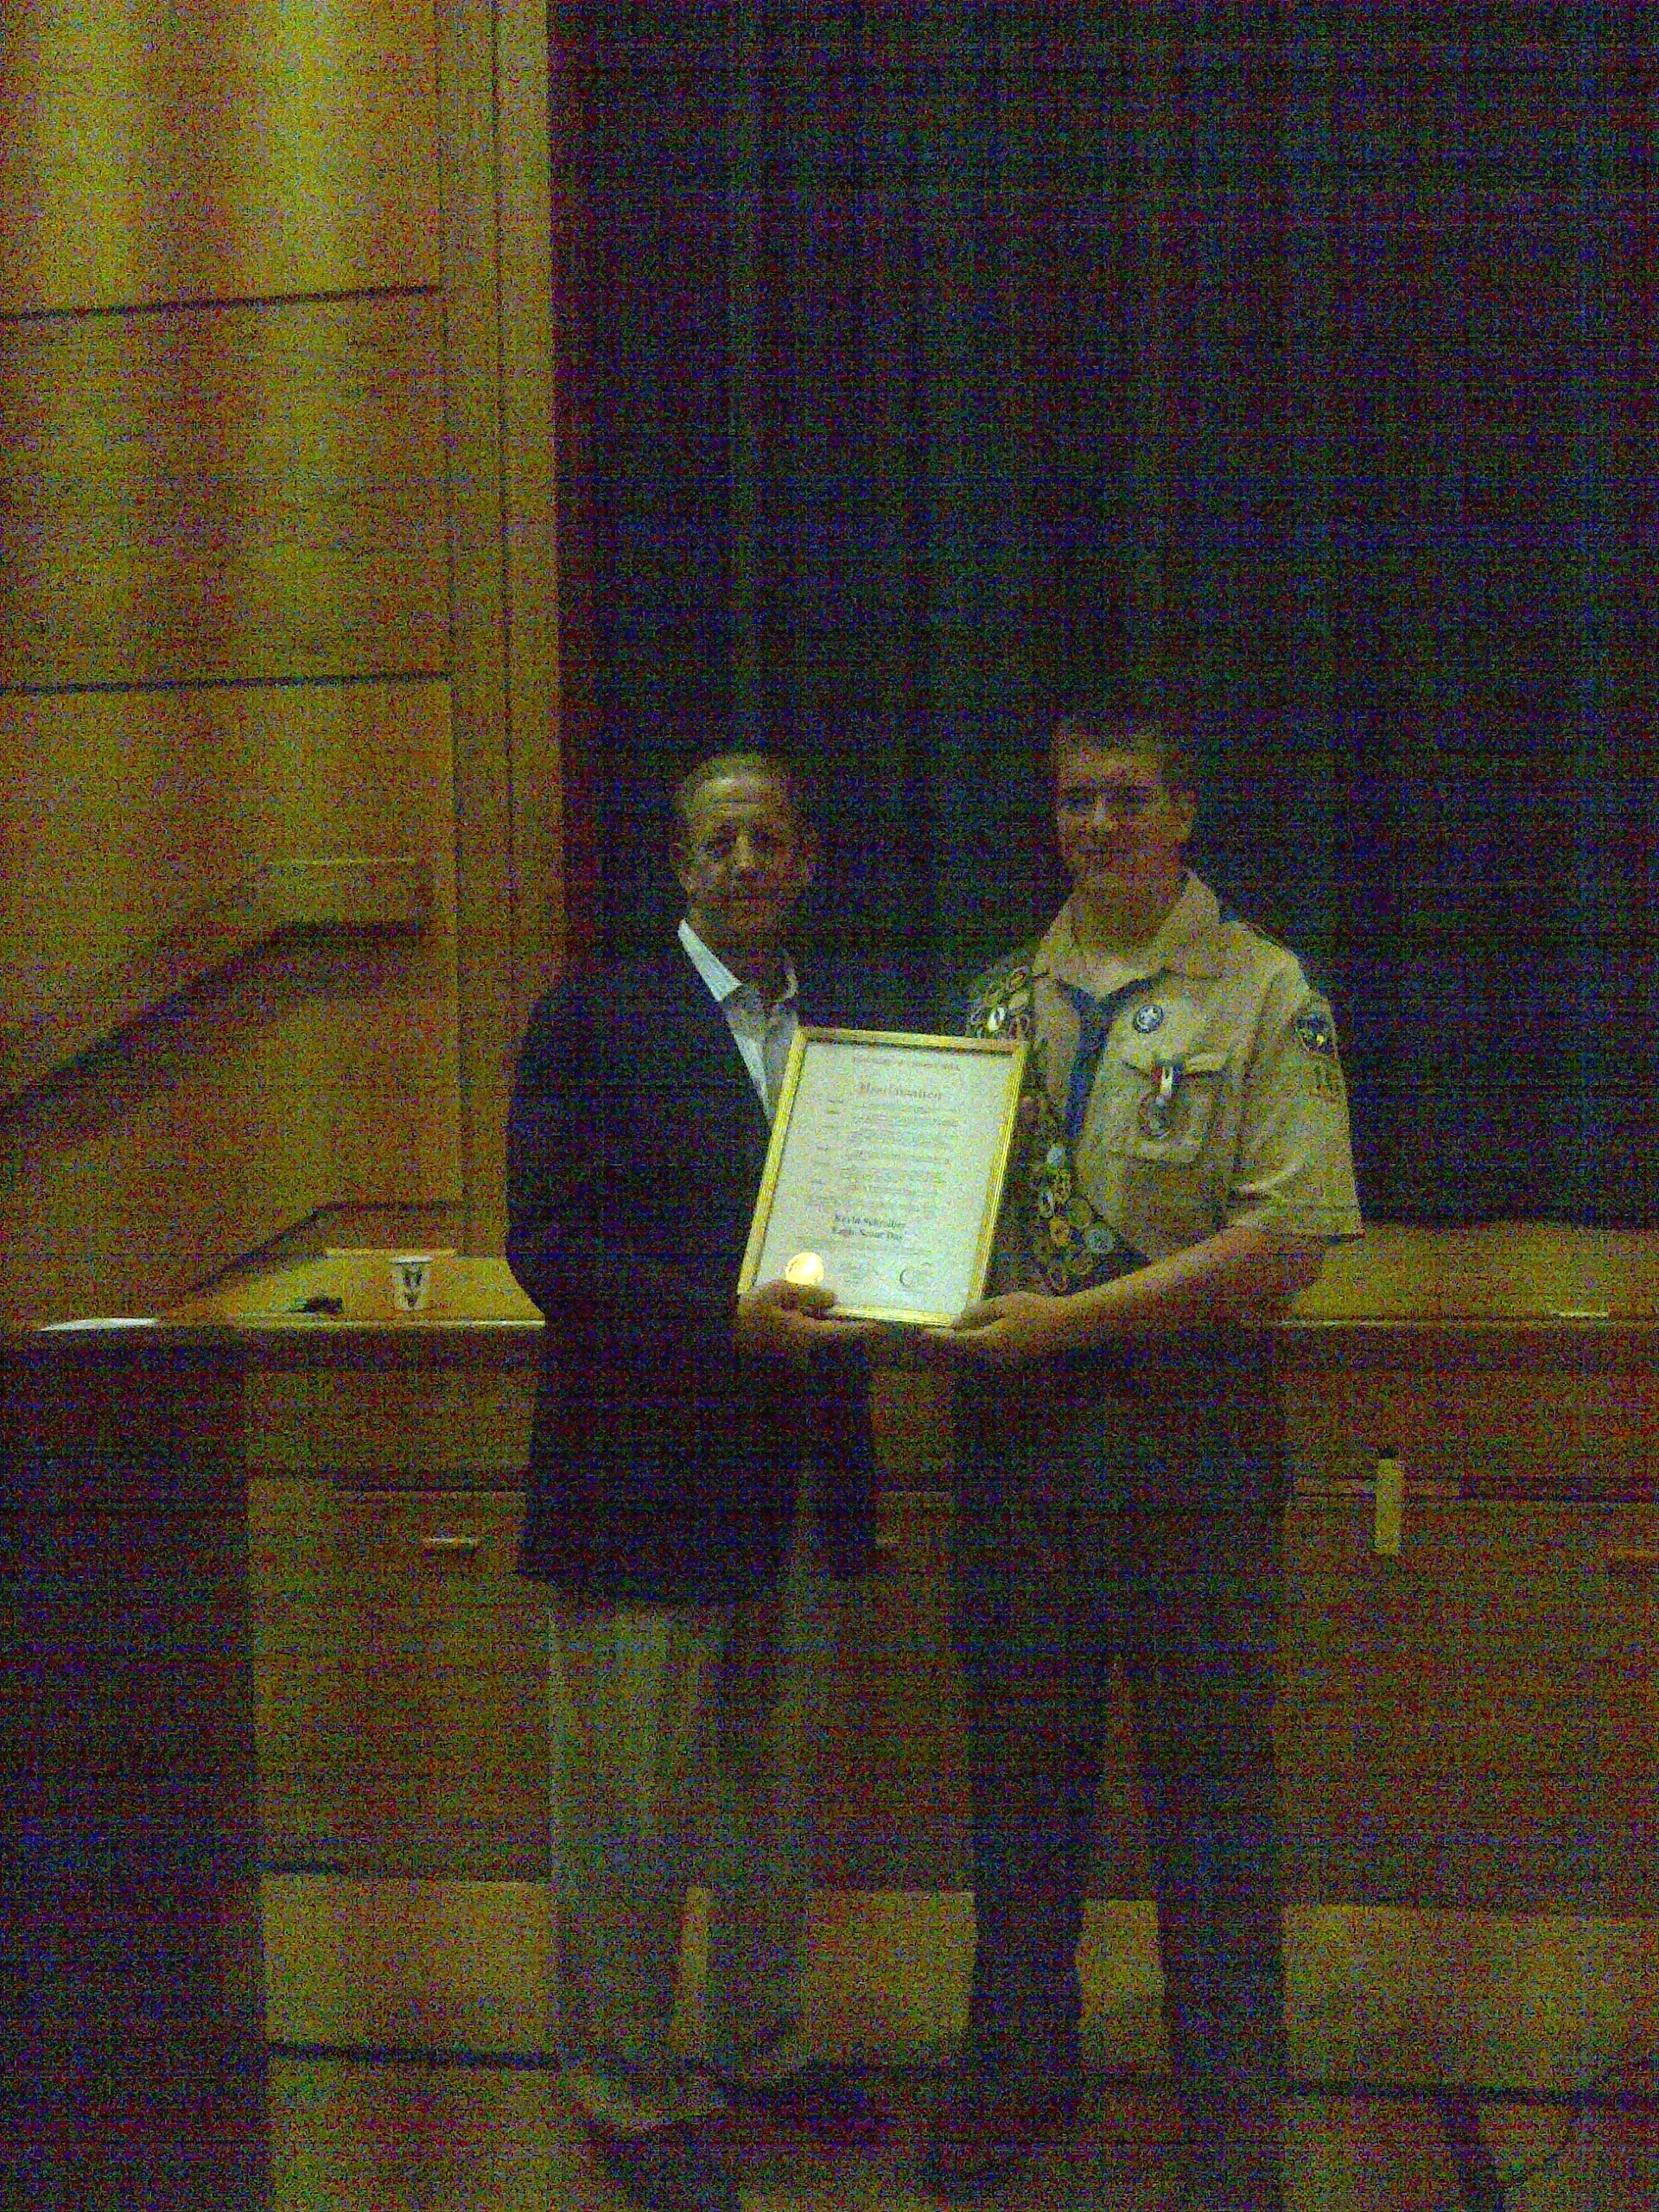 Kevin Schreiber Eagle Scout